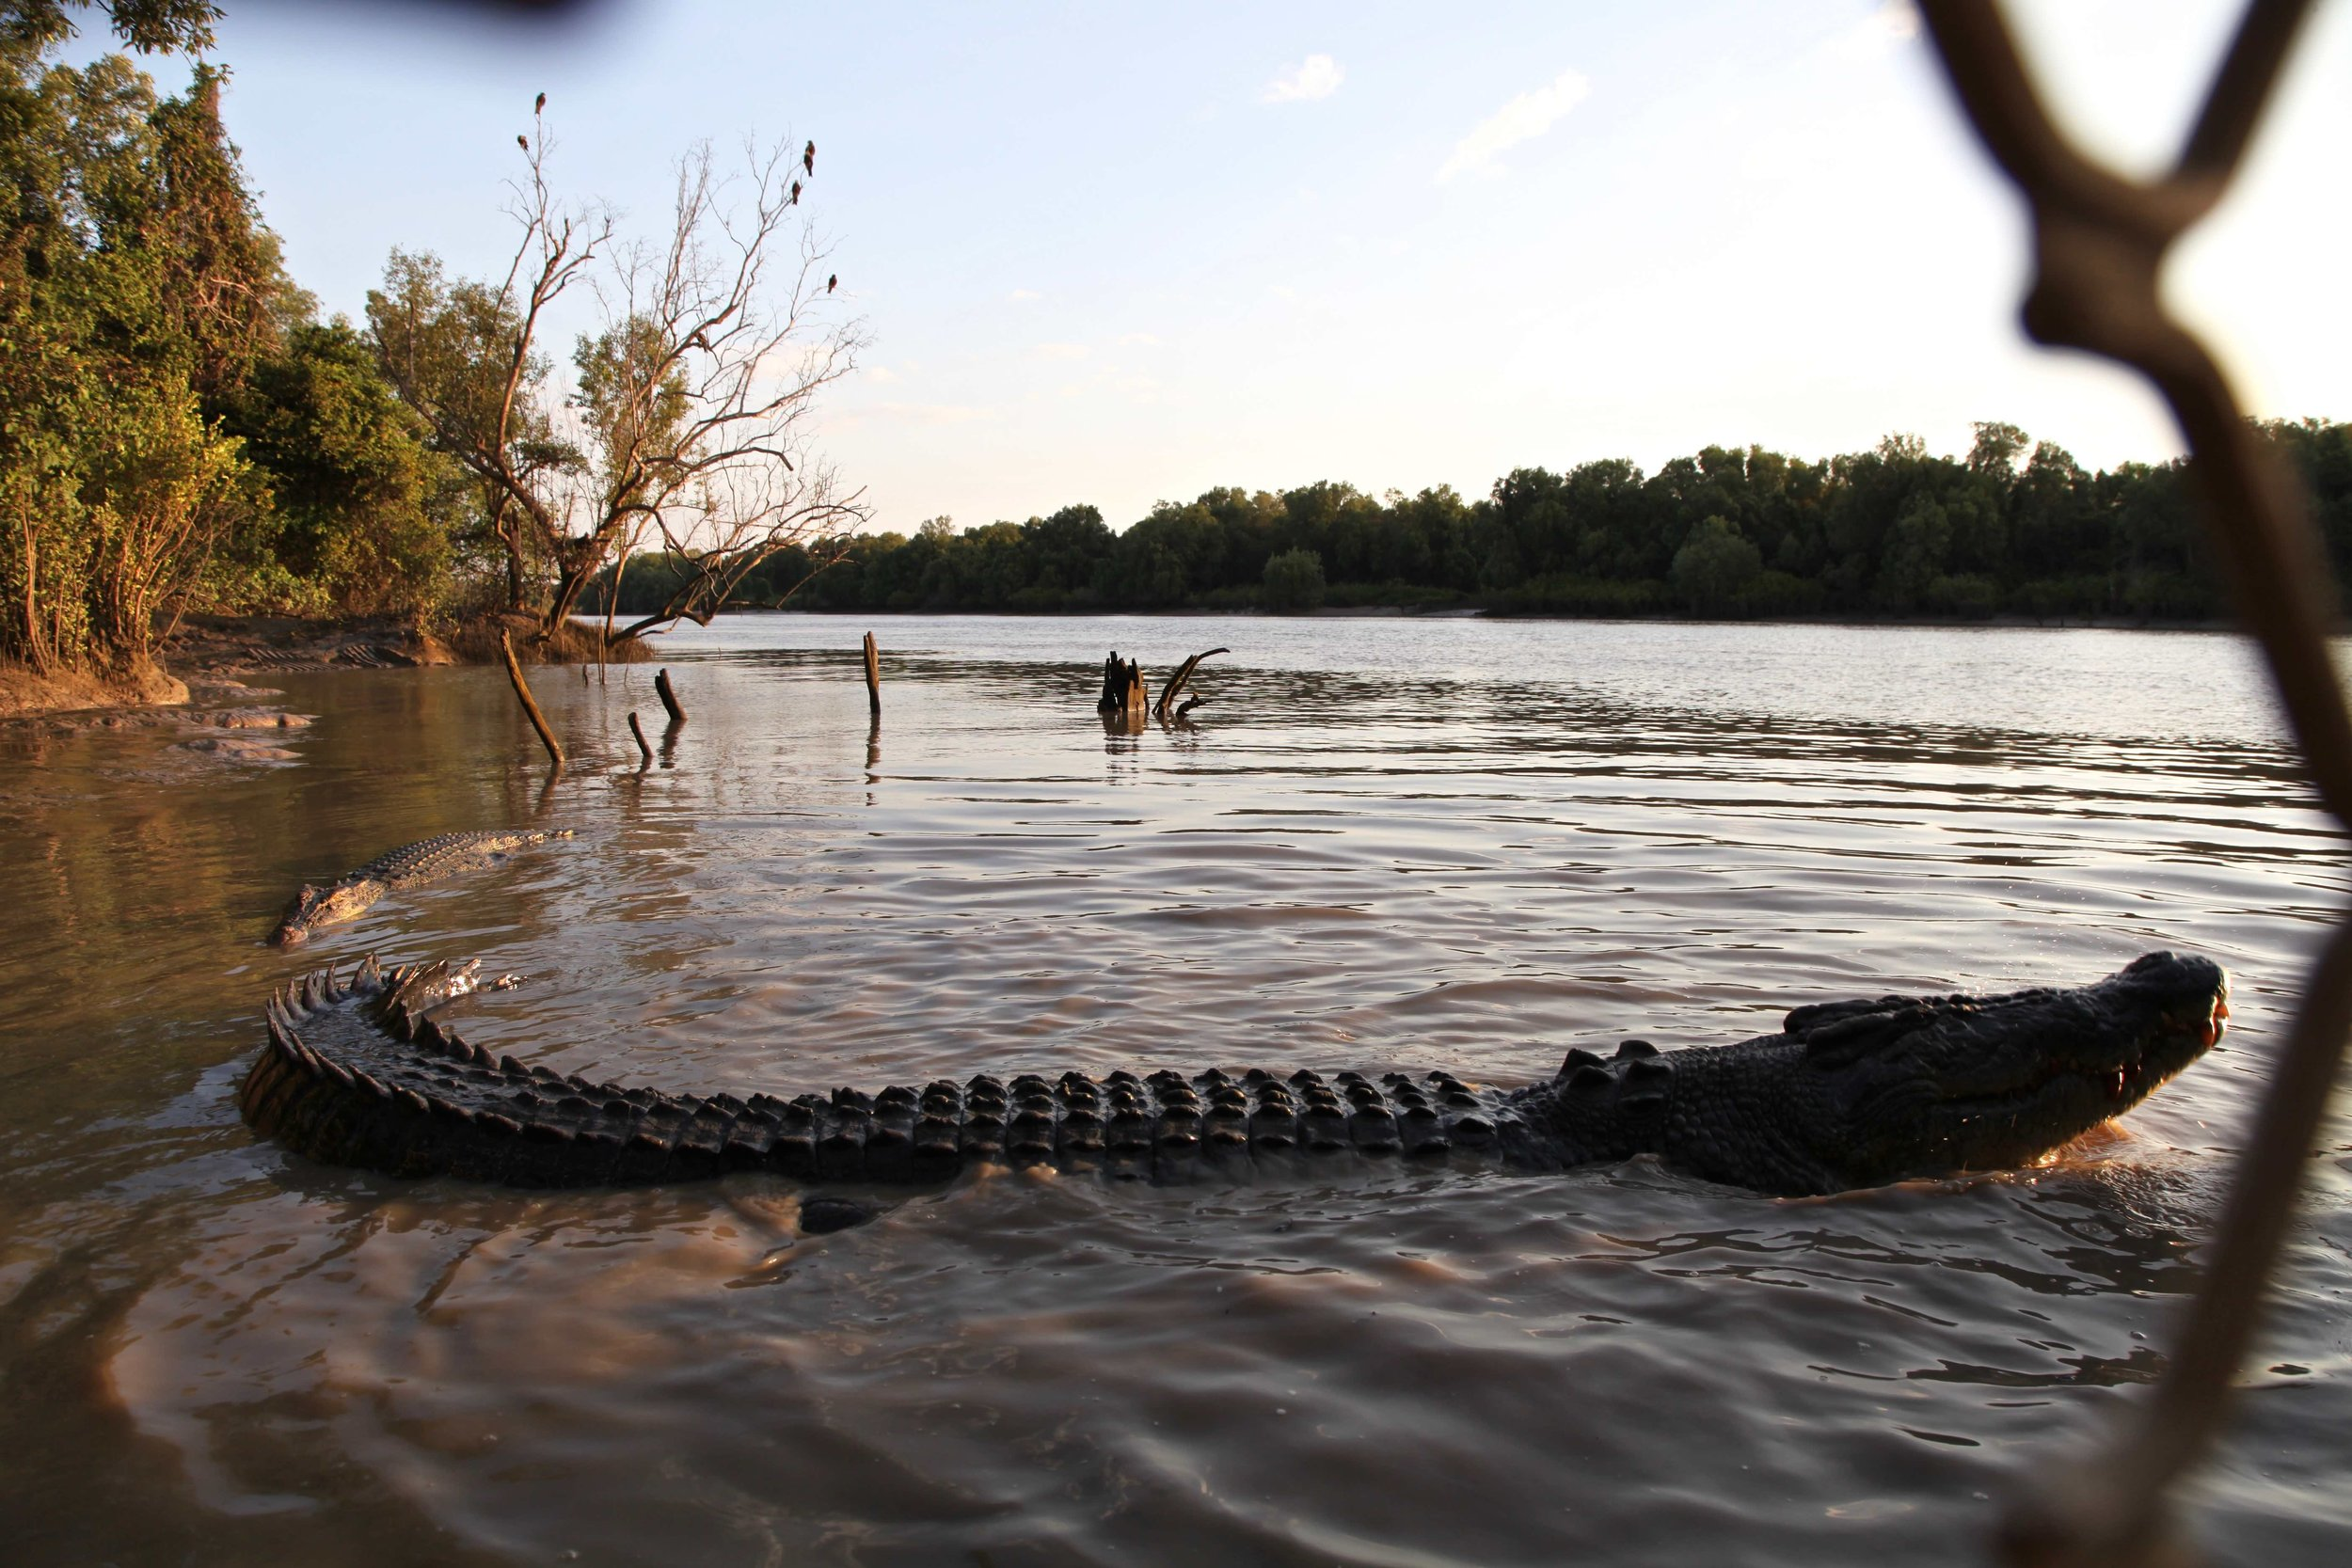 There he is — crocodiles in the Adelaide River.